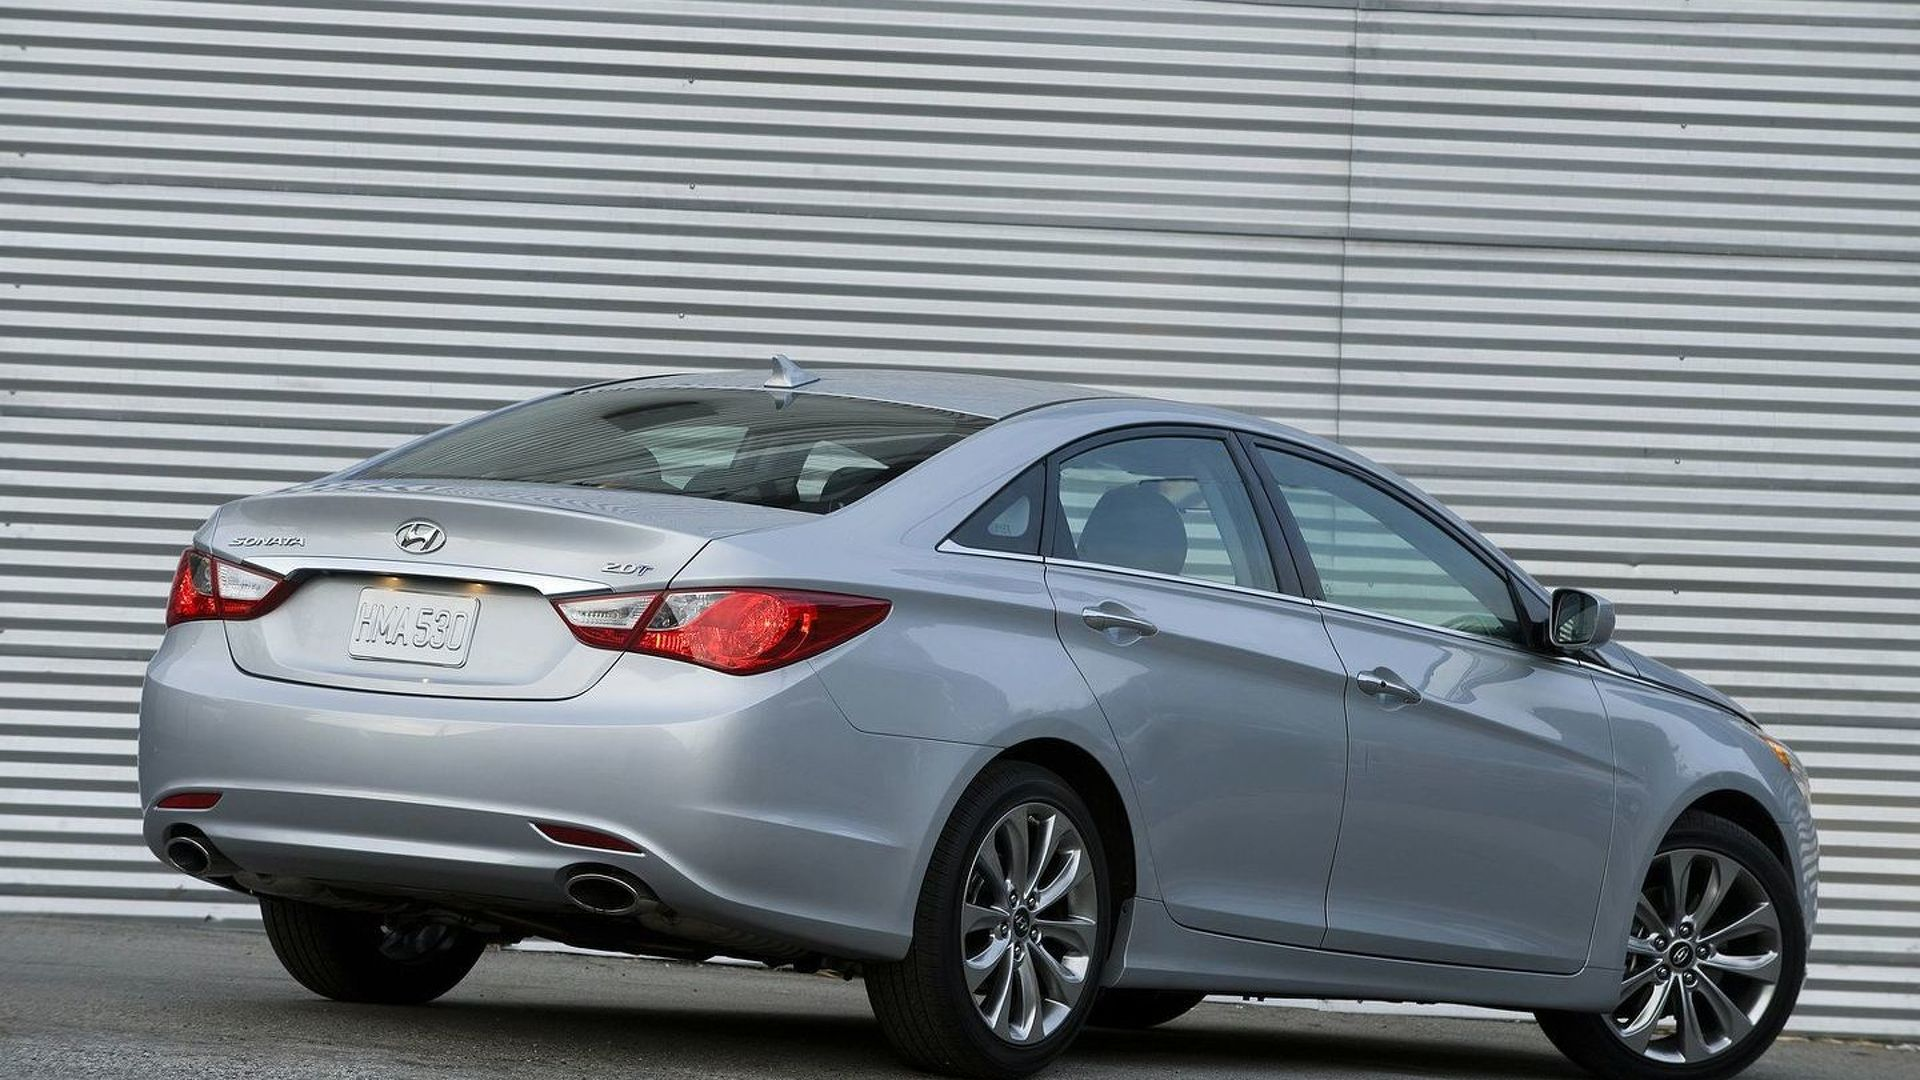 2011 Hyundai Sonata 2.0T Announced   Twin Scroll Turbocharger And Direct  Injection